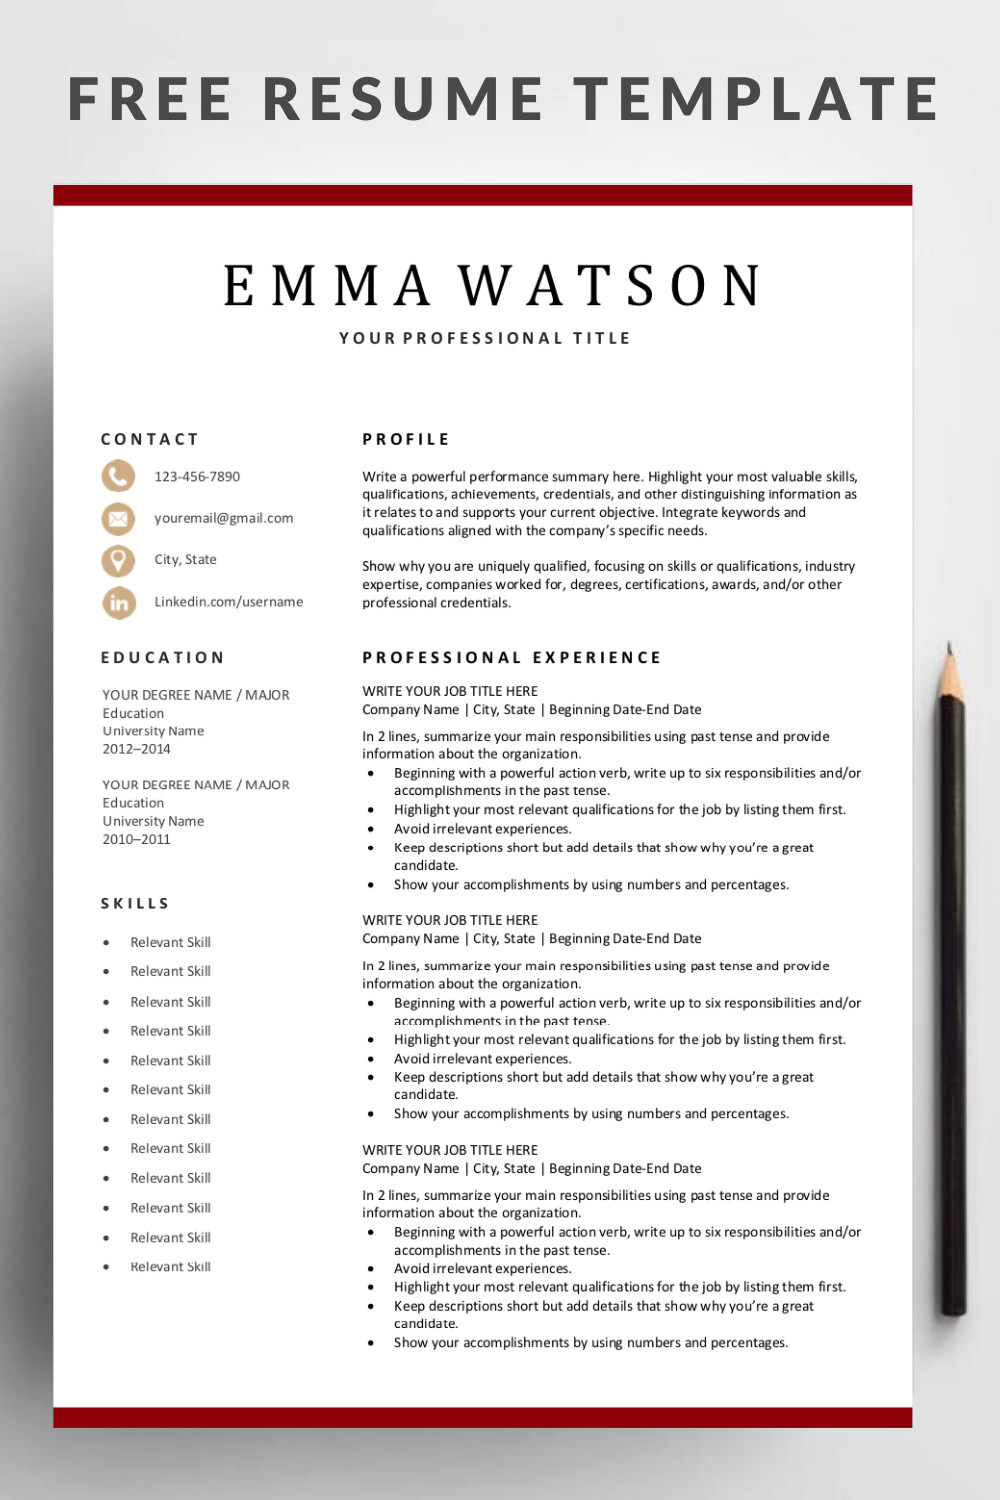 Modern Resume Template Download For Free In 2020 Resume Template Free Resume Template Downloadable Resume Template